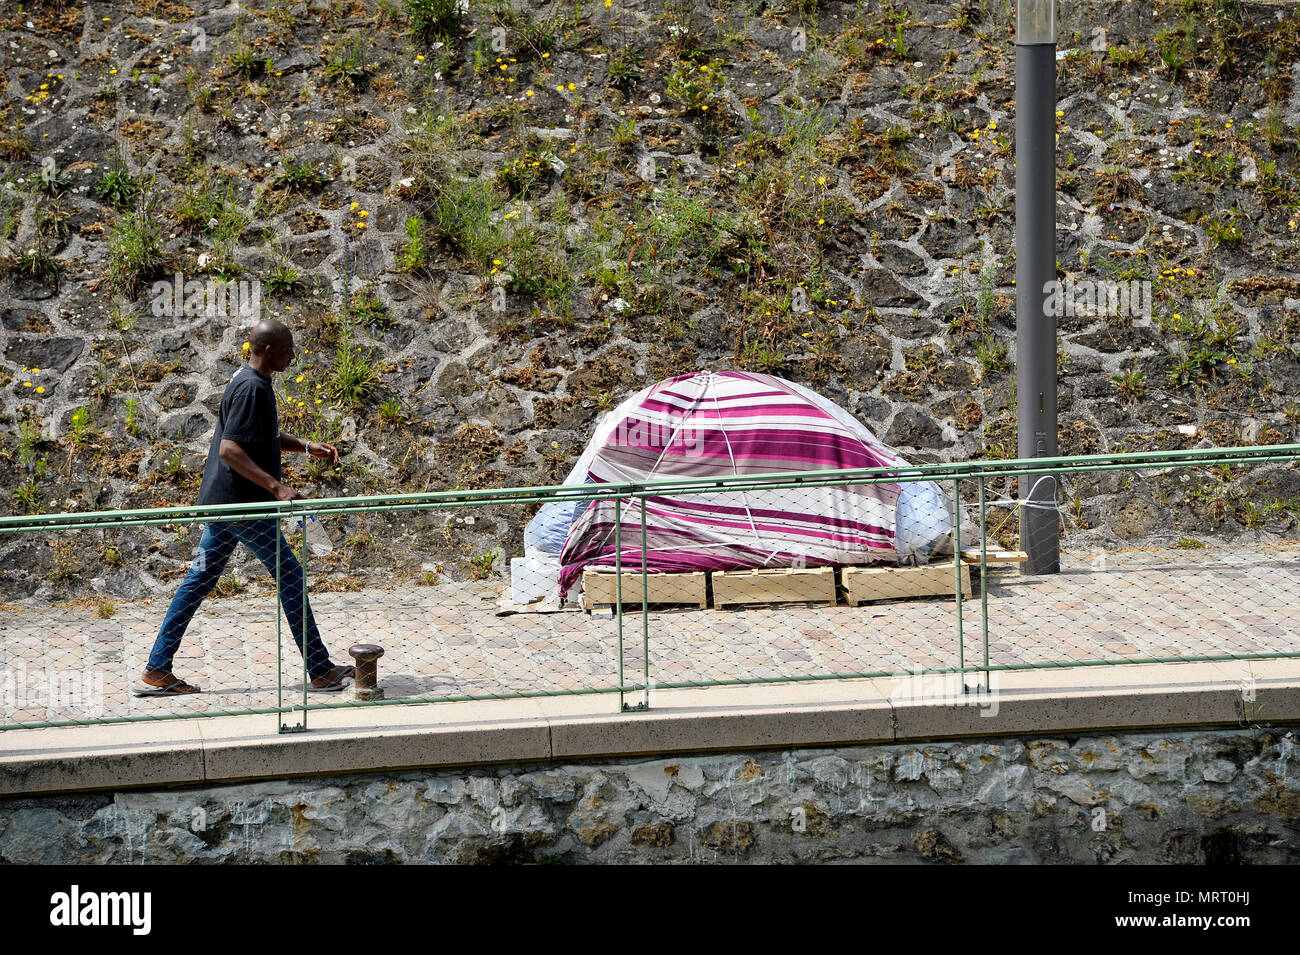 La Villette Migrant Camp in Paris, Canal d'Aubervilliers - France - Stock Image